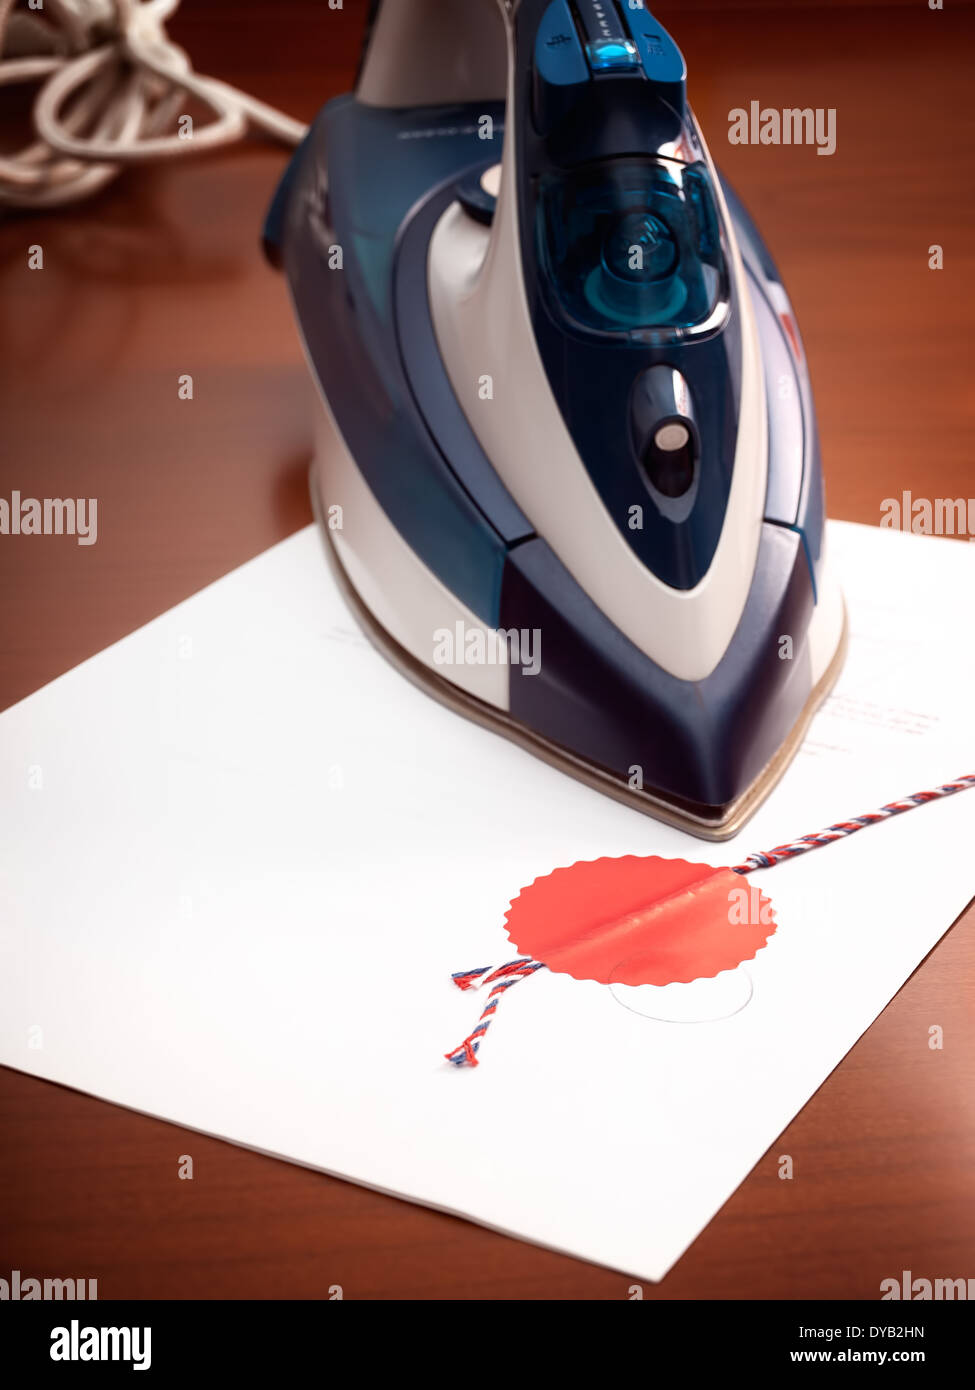 Metaphorical view of changes and modifications in legal agreements, presented with an iron and certified contract. - Stock Image